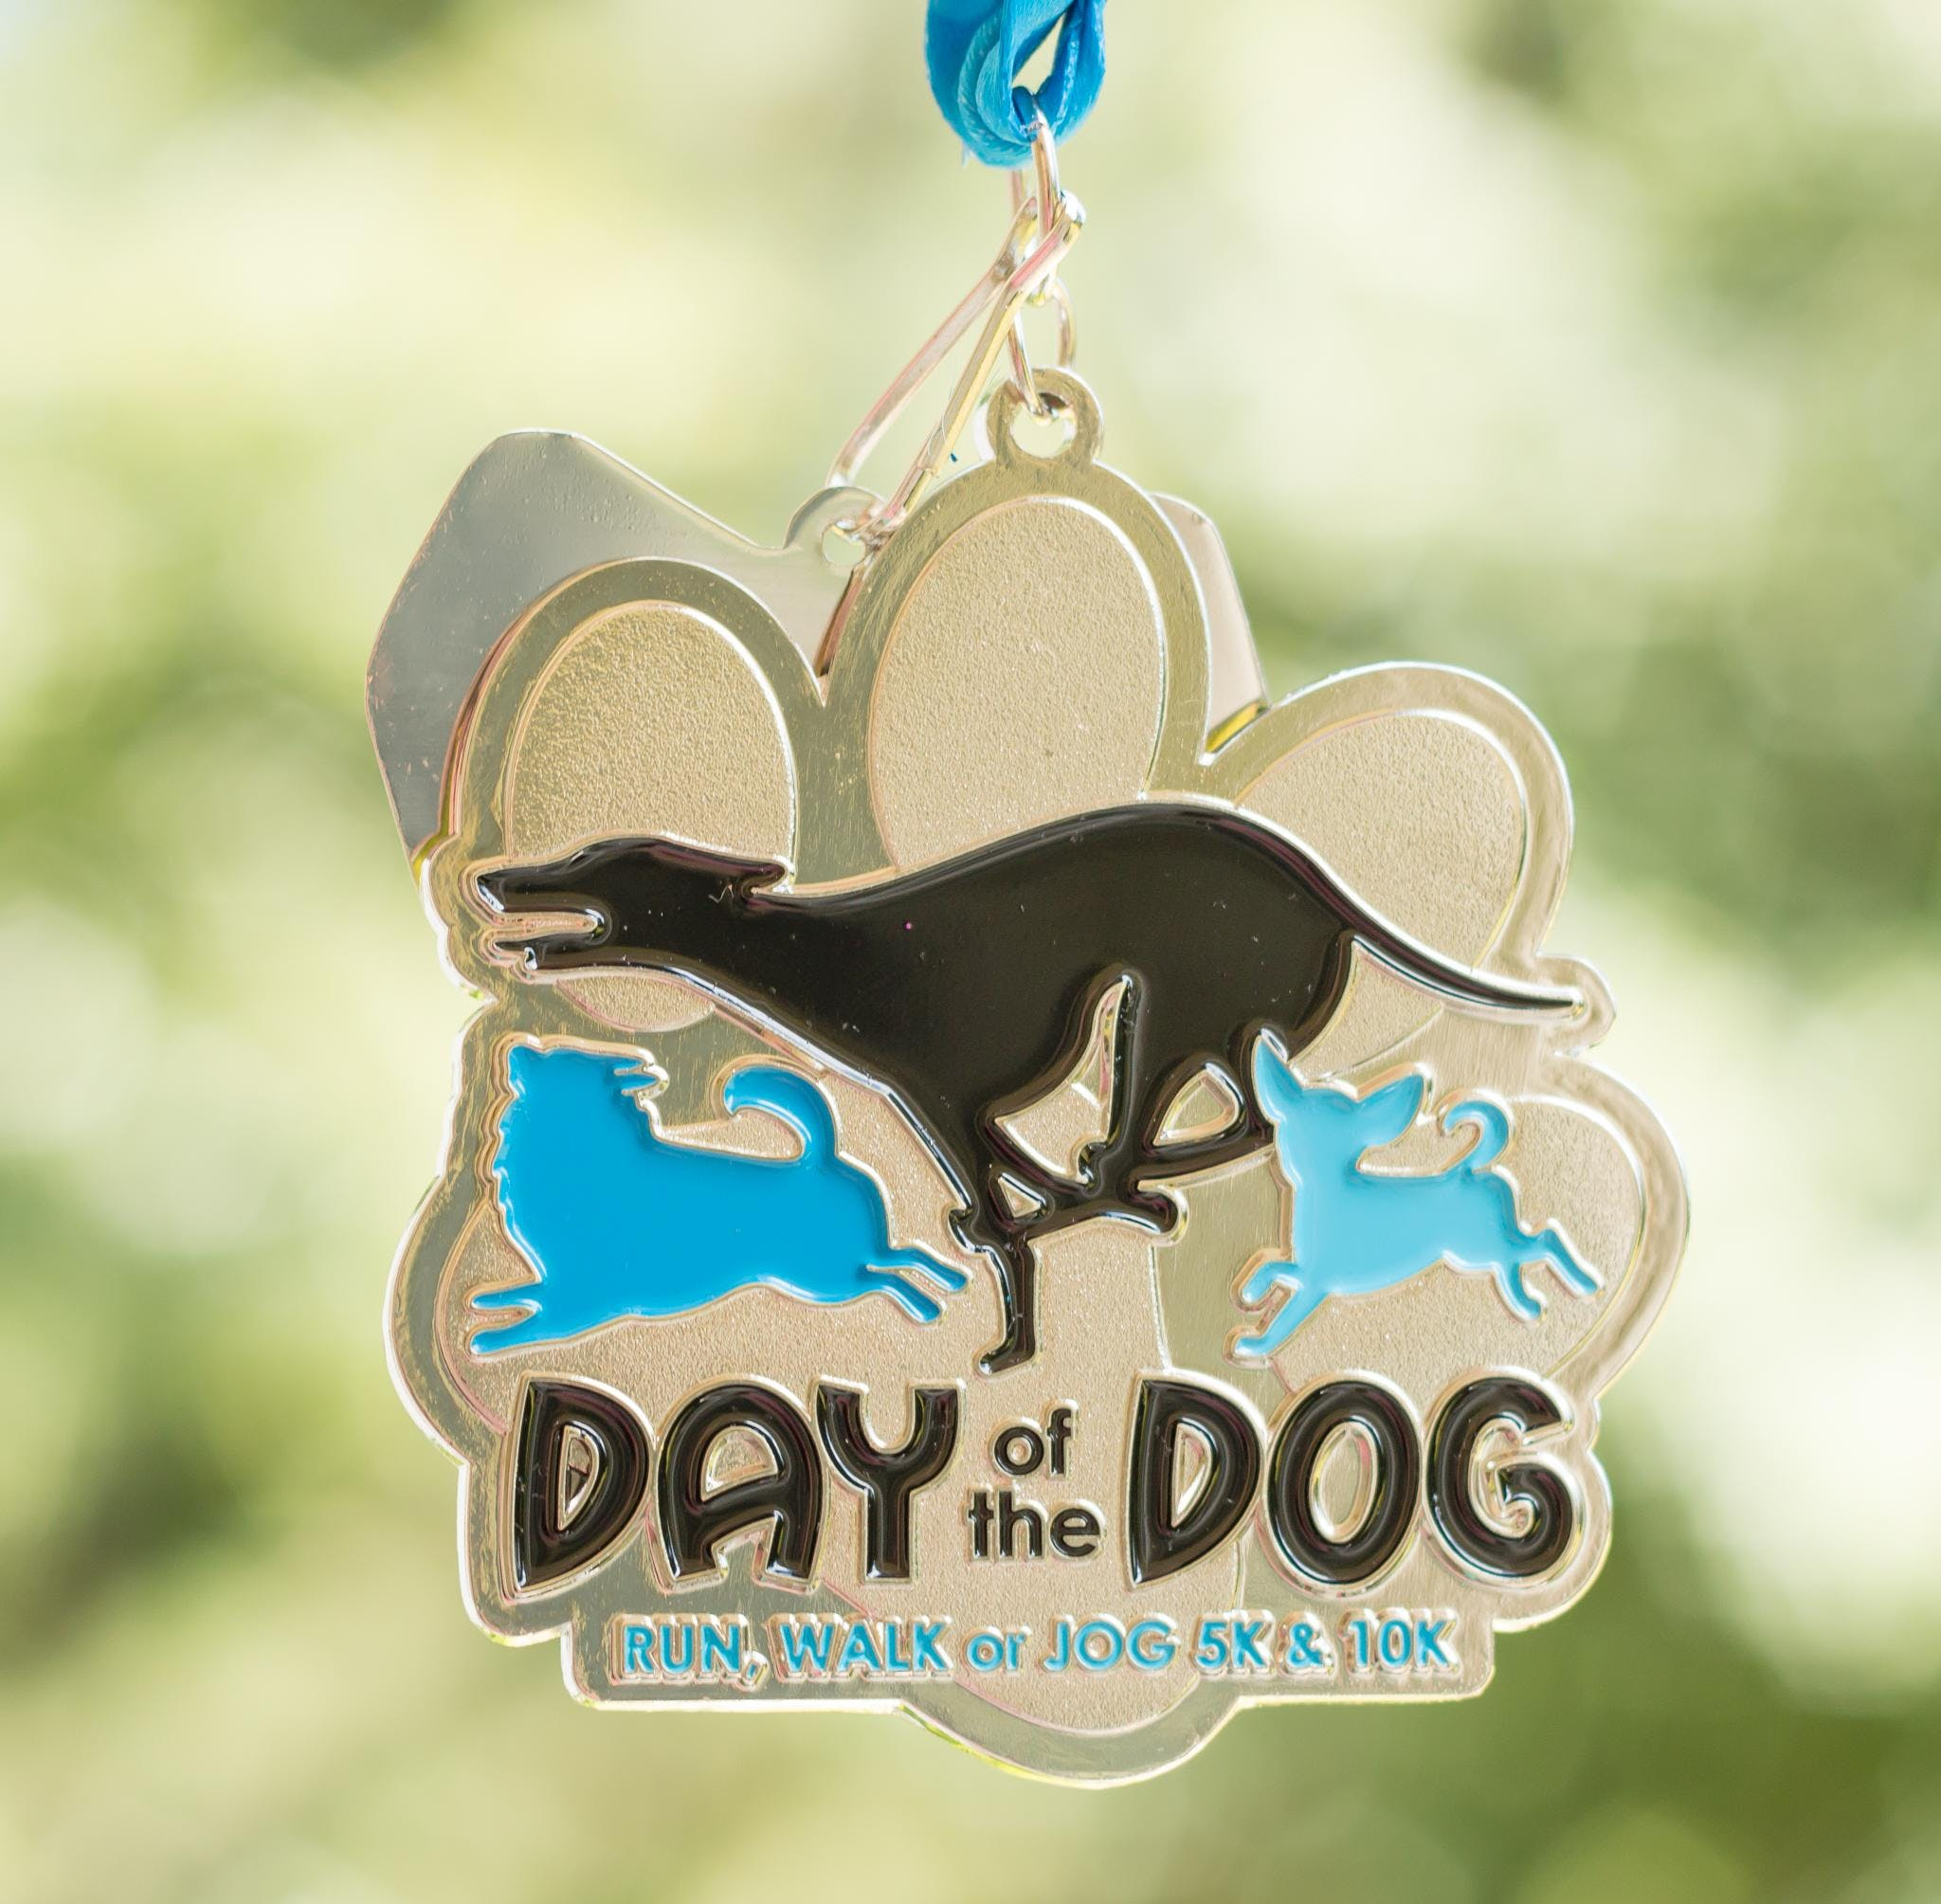 Now Only $14! Day of the Dog: Run, Walk or Jog 5K & 10K - Paterson